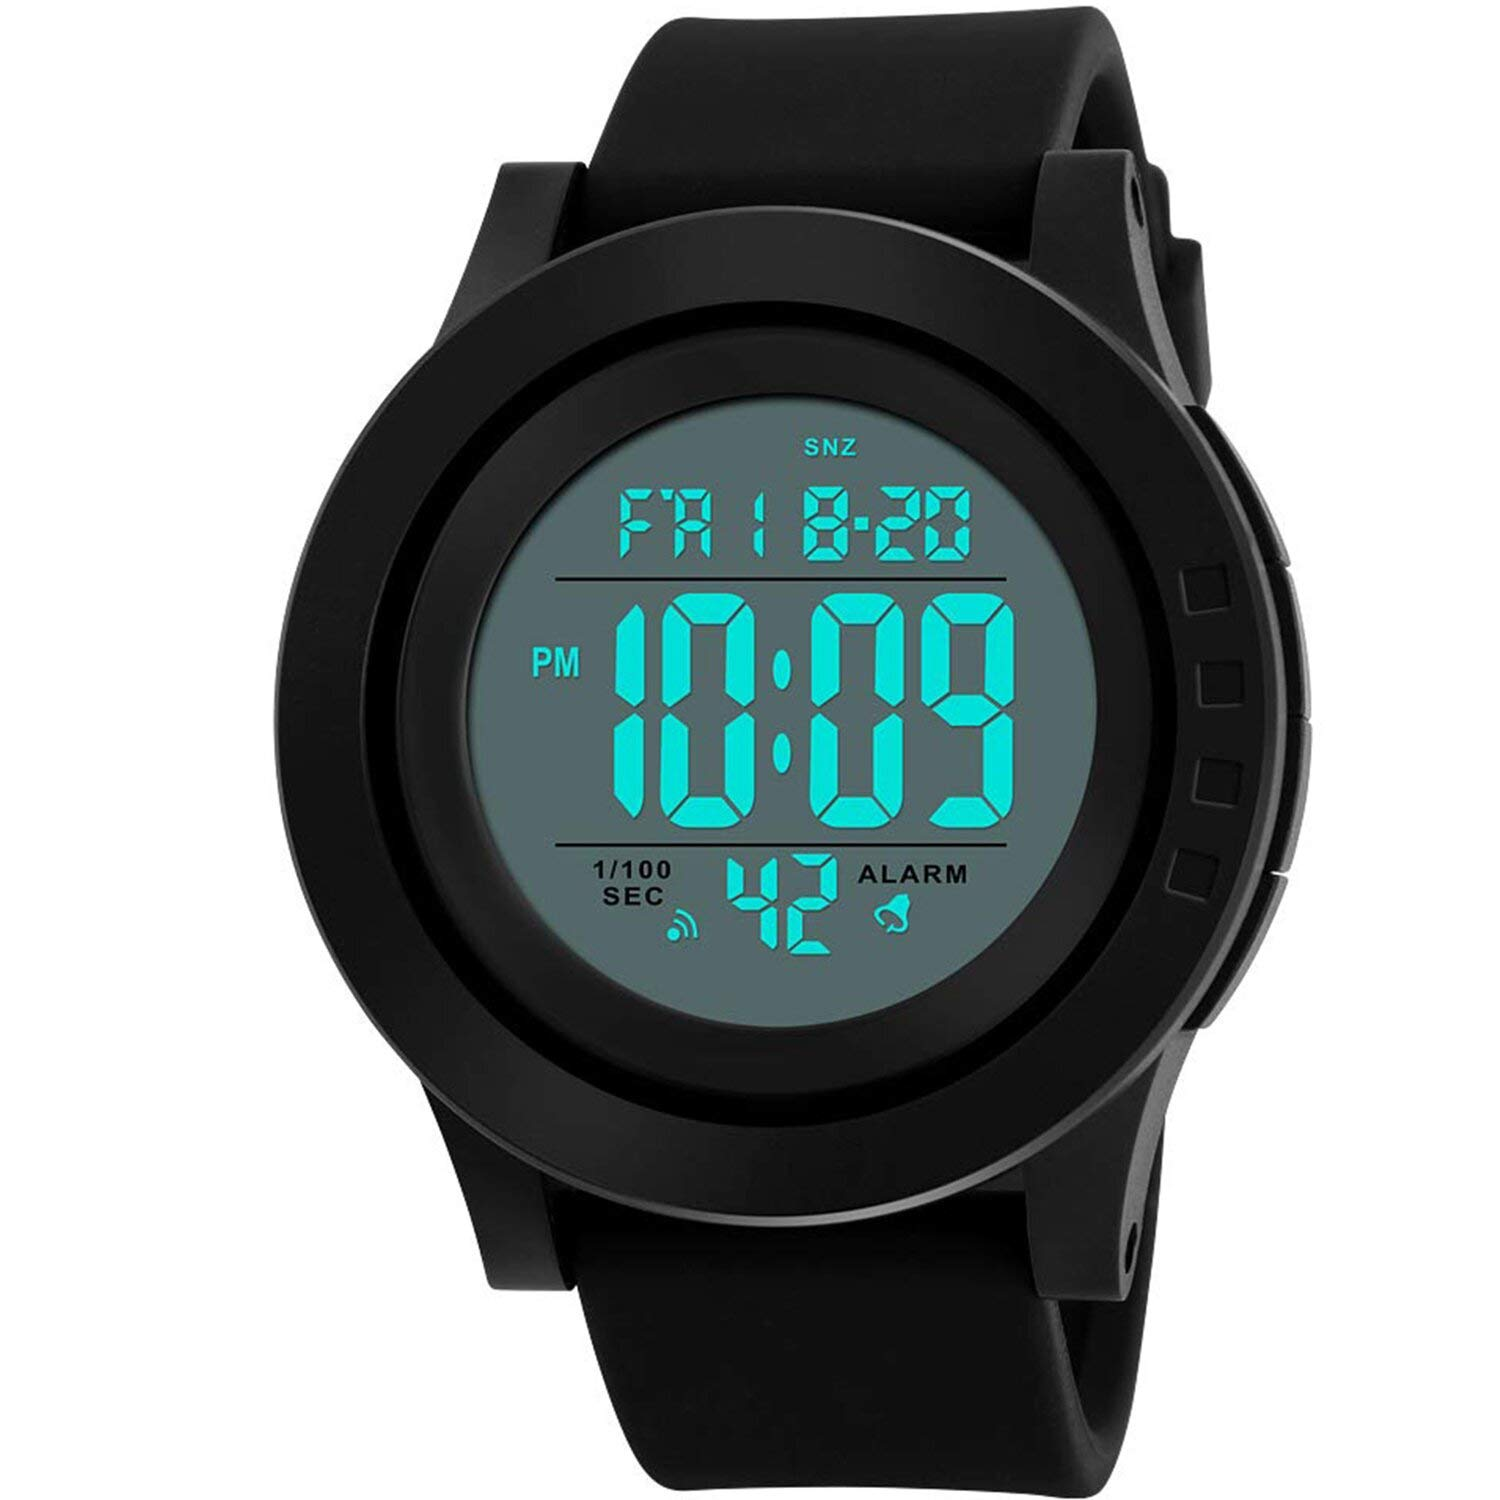 New Brand Outdoor Sports Compass Watches Hiking Men Watch Digital Led Electronic Watch Man Sports Watches Chronograph Men Clock And To Have A Long Life. Digital Watches